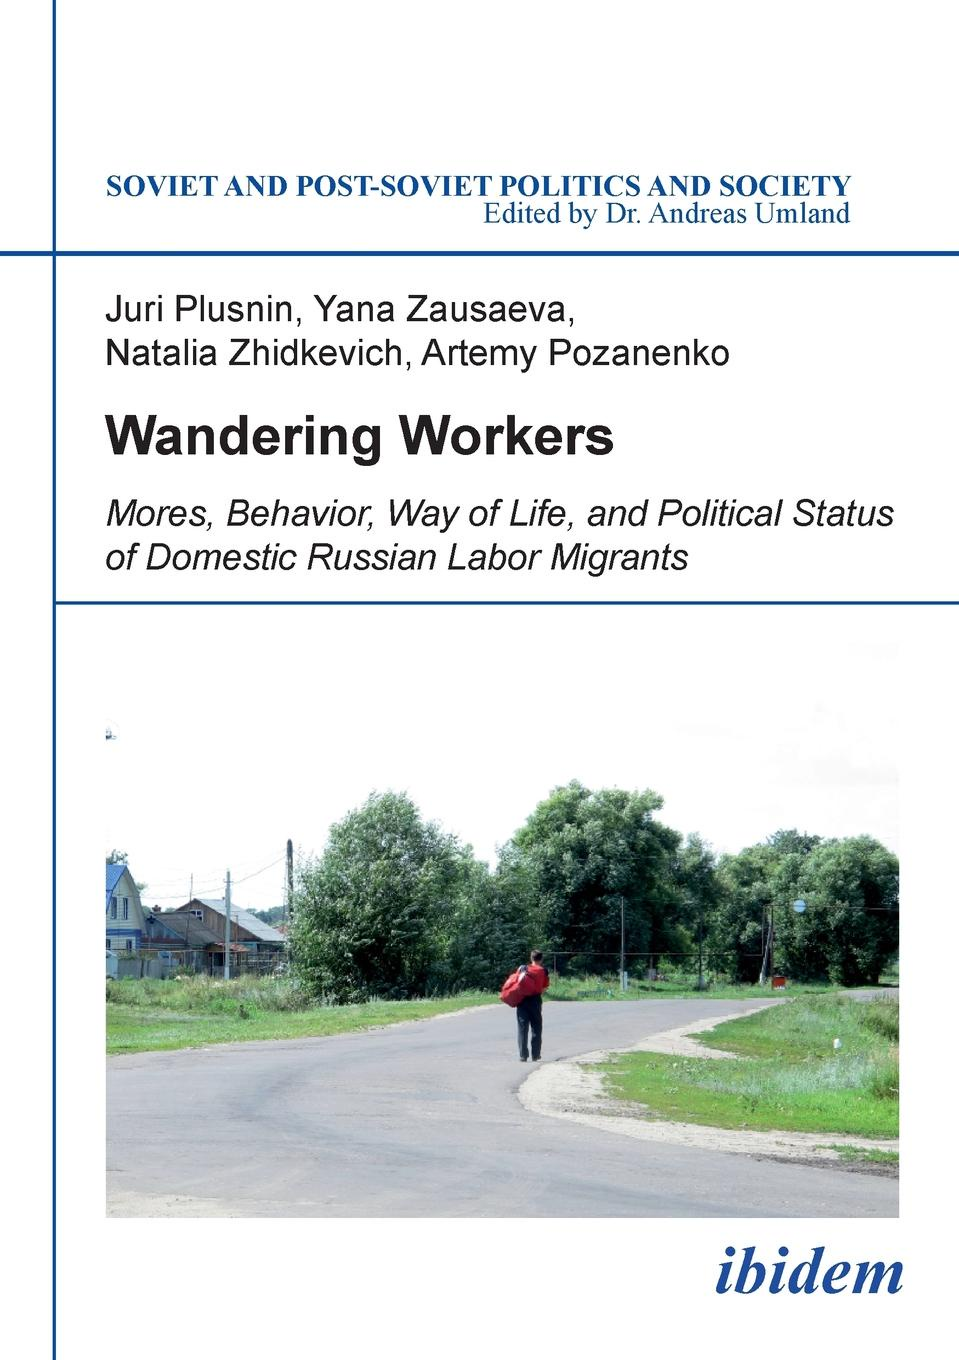 Juri Plusnin Wandering Workers. Mores, Behavior, Way of Life, and Political Status of Domestic Russian Labor Migrants isaac deutscher russia china and the west a contemporary chronicle 1953 1966